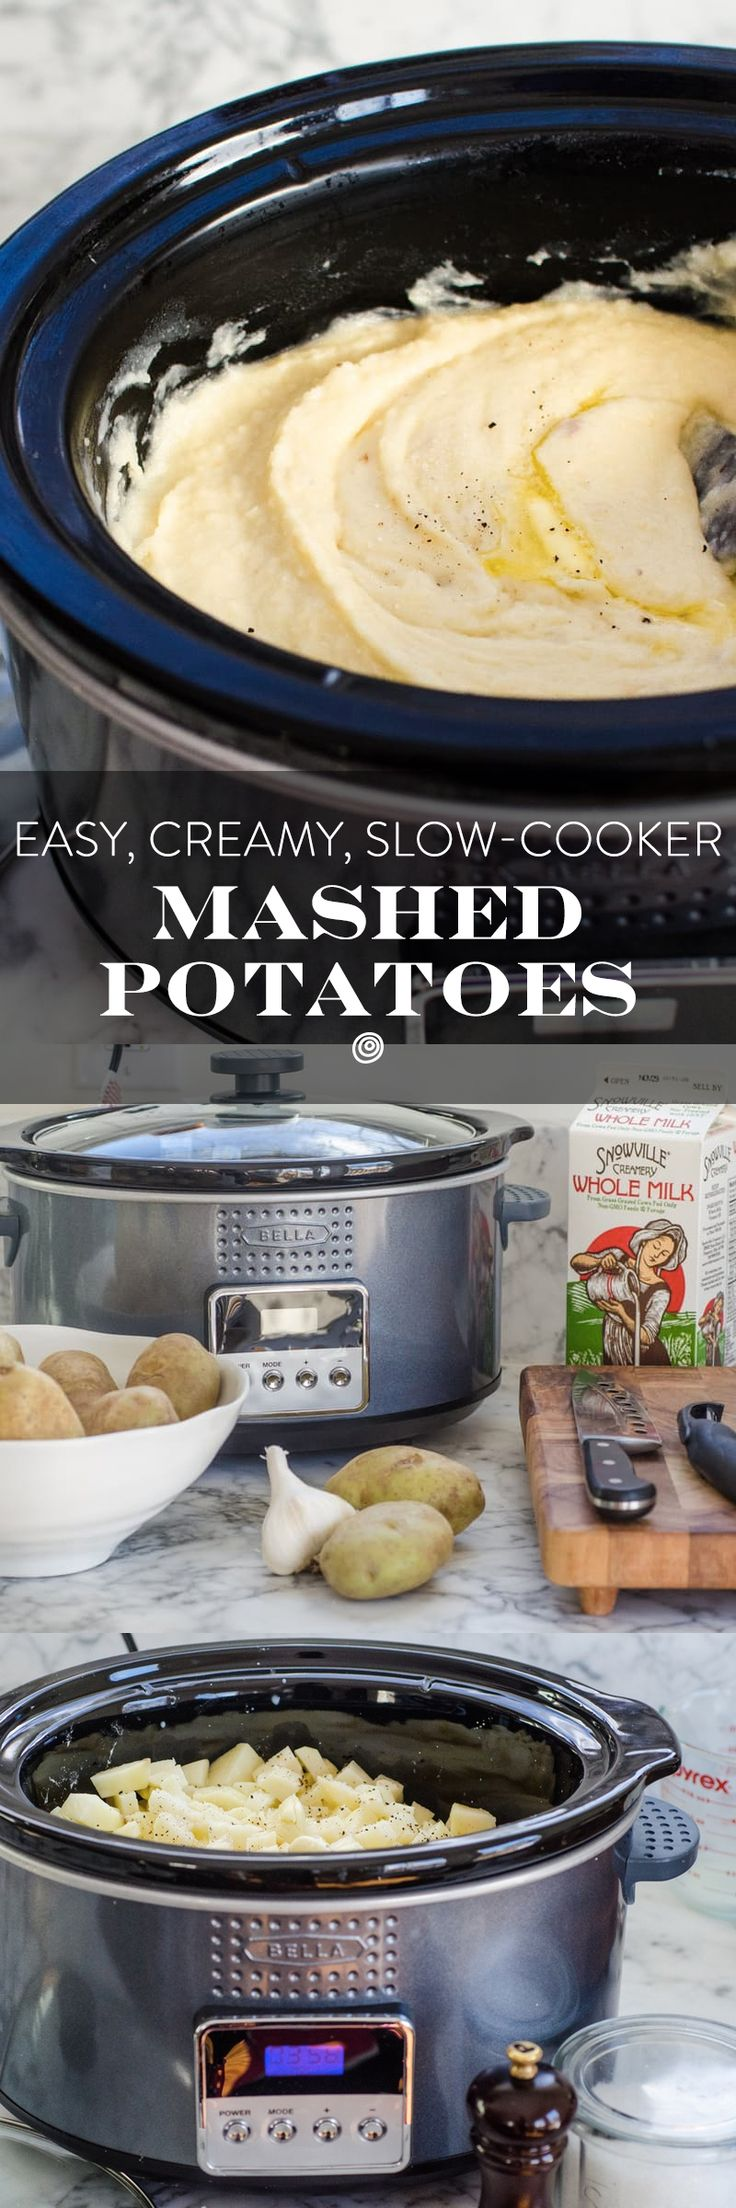 Need a dish to pass? Hosting a large party? This collection includes crowd-pleasing potluck side dishes for all kinds of gatherings. Find recipes for make-ahead potatoes, baked beans, potato salad, veggie side dishes and more.